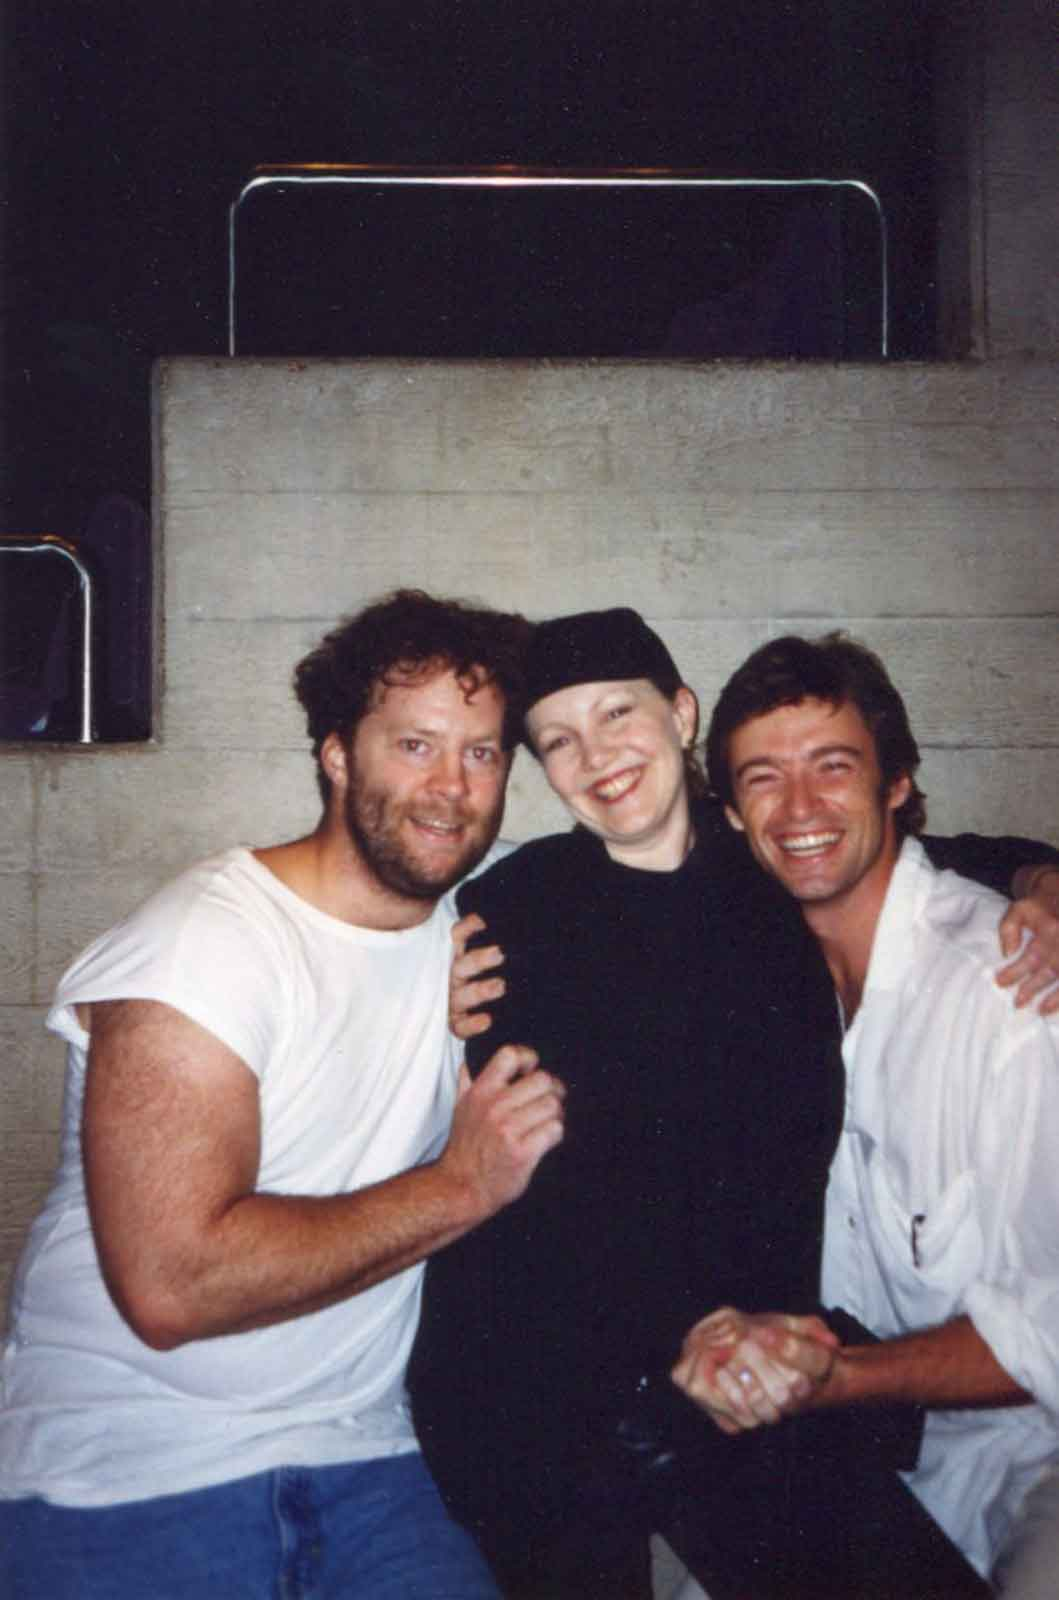 Hugh Jackman and Shuler Hensley both in white shirt and jeans with Susan Stroman herself, who's in an all-black outfit.